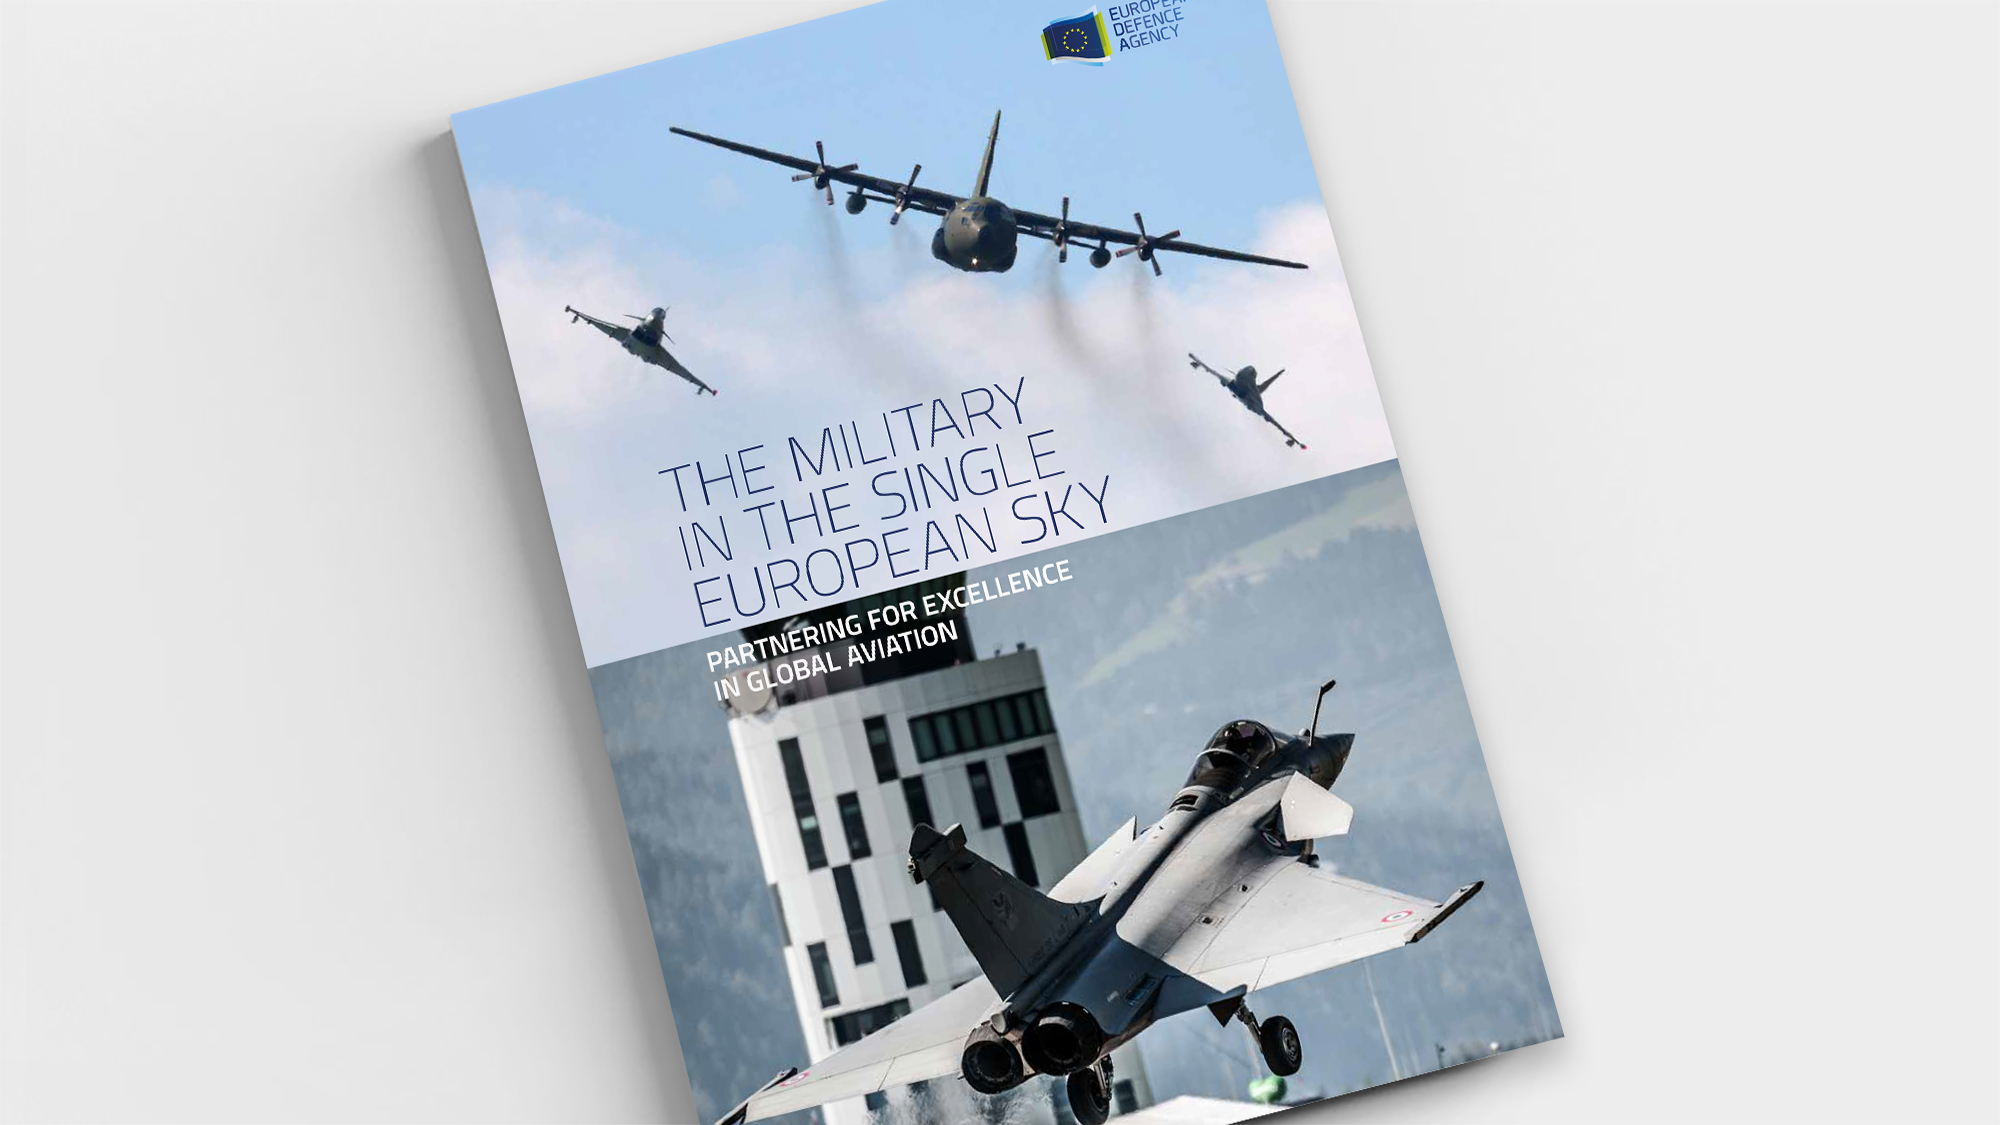 The Military in the Single European Sky